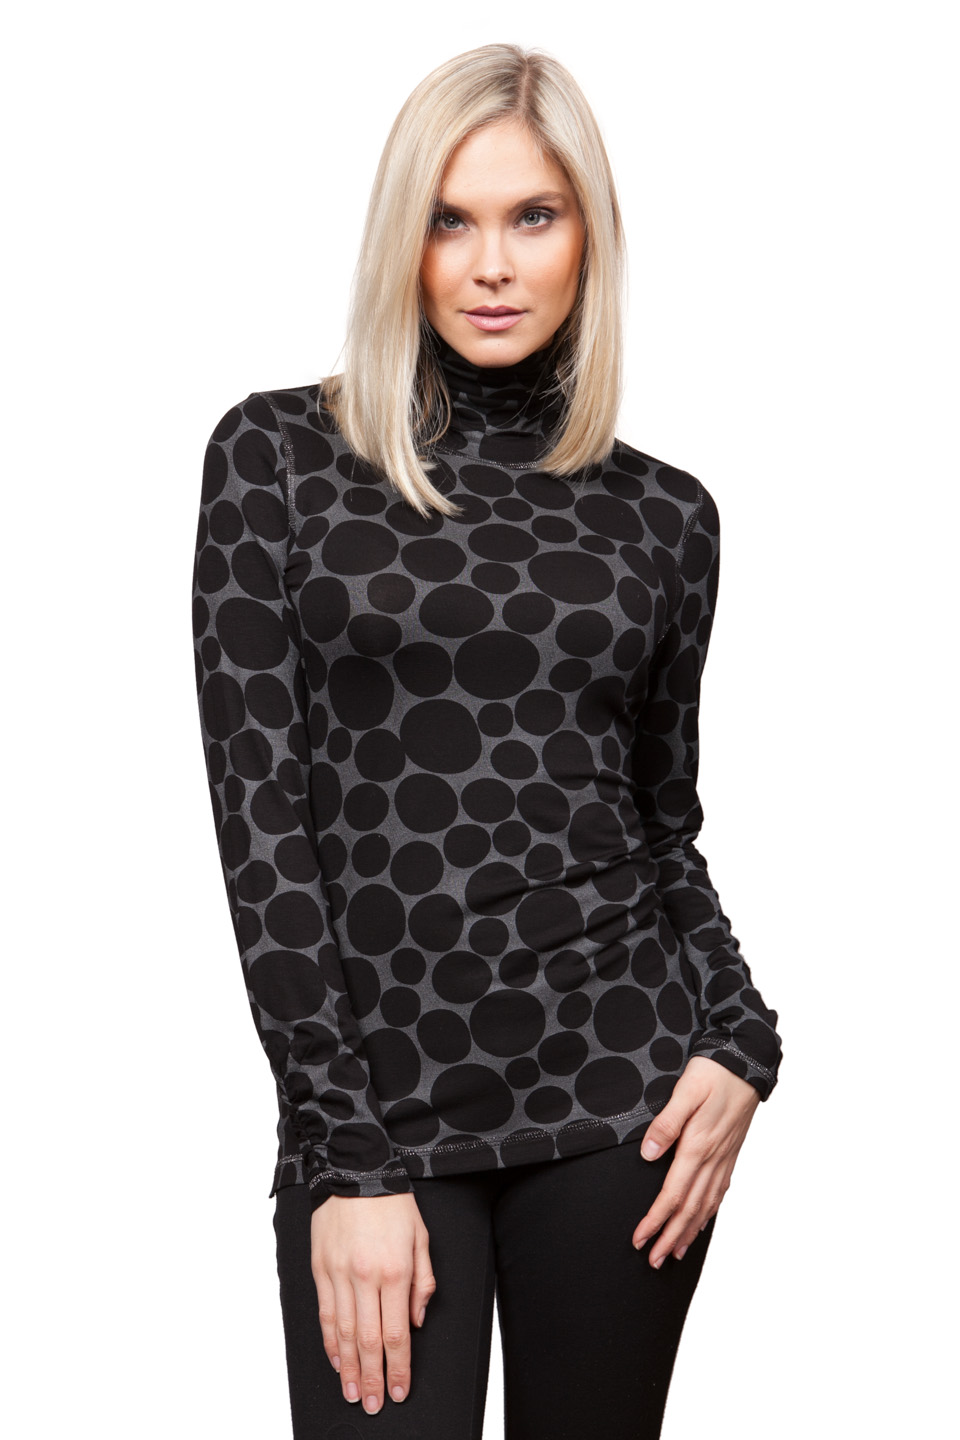 Copy of Style # 25217-16, p. 7<br>Dot Foil Print<br>Pattern: Dots